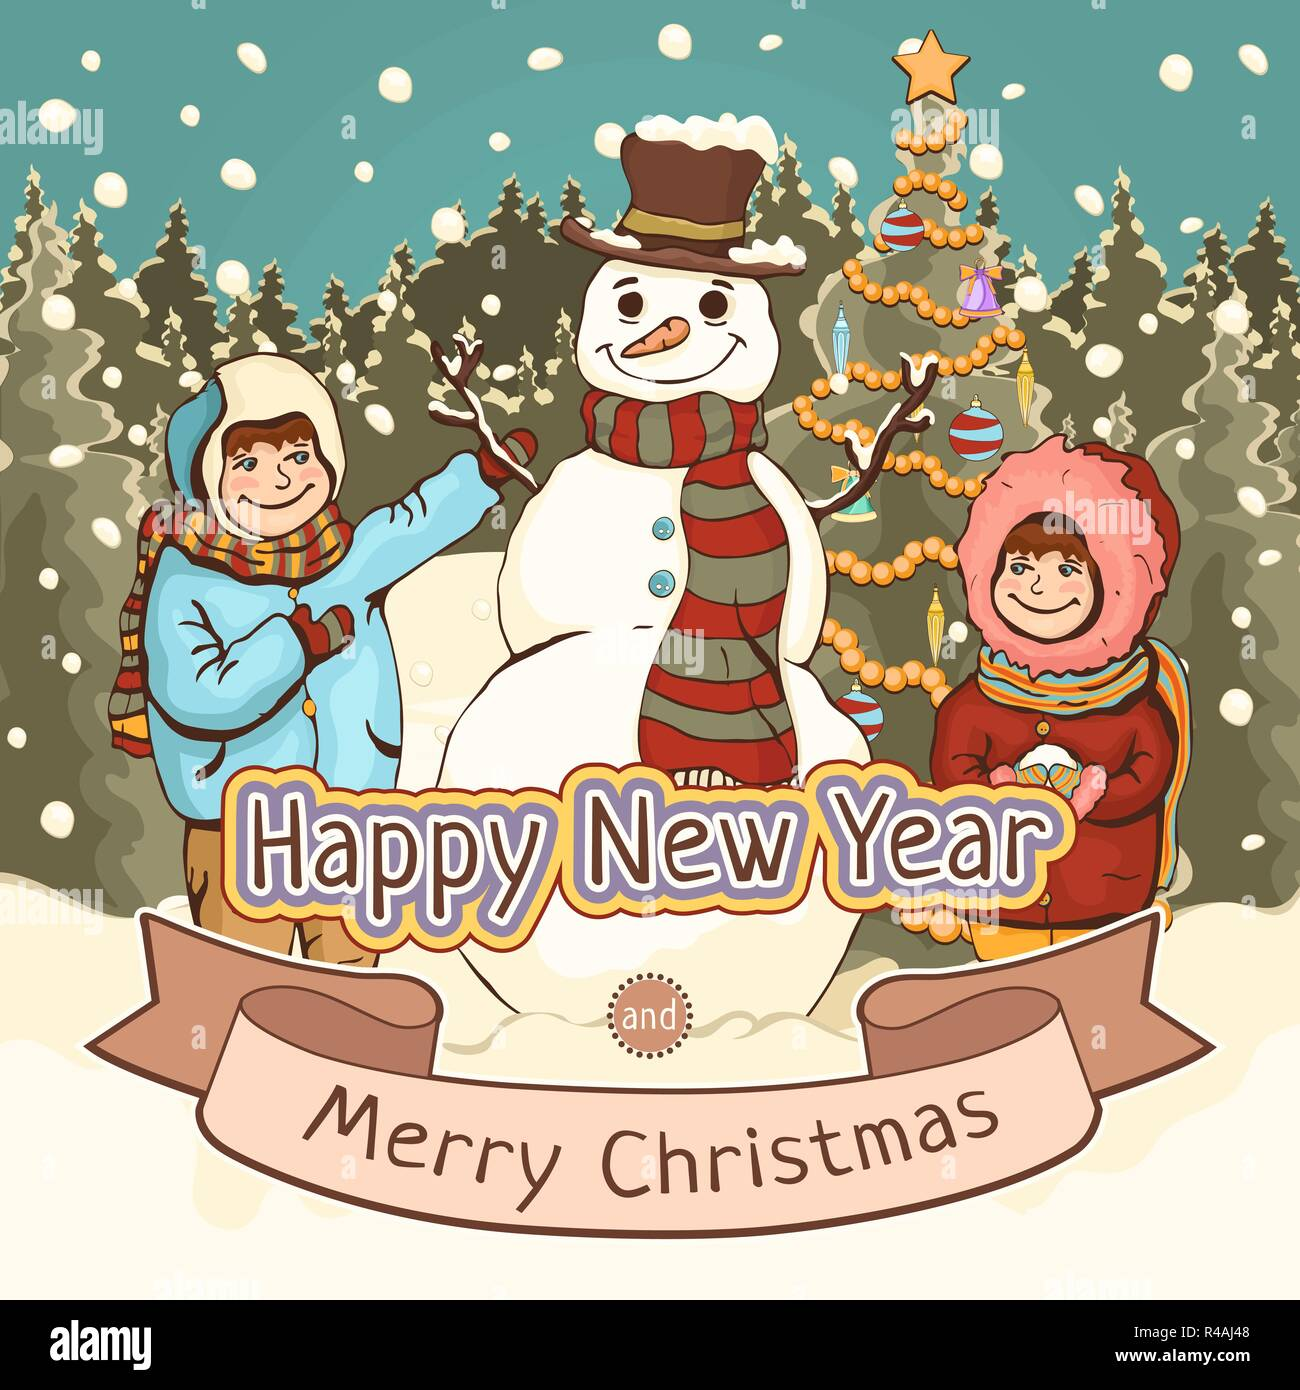 Christmas Day Drawing.Merry Christmas And Happy New Year Card Poster Cartoon